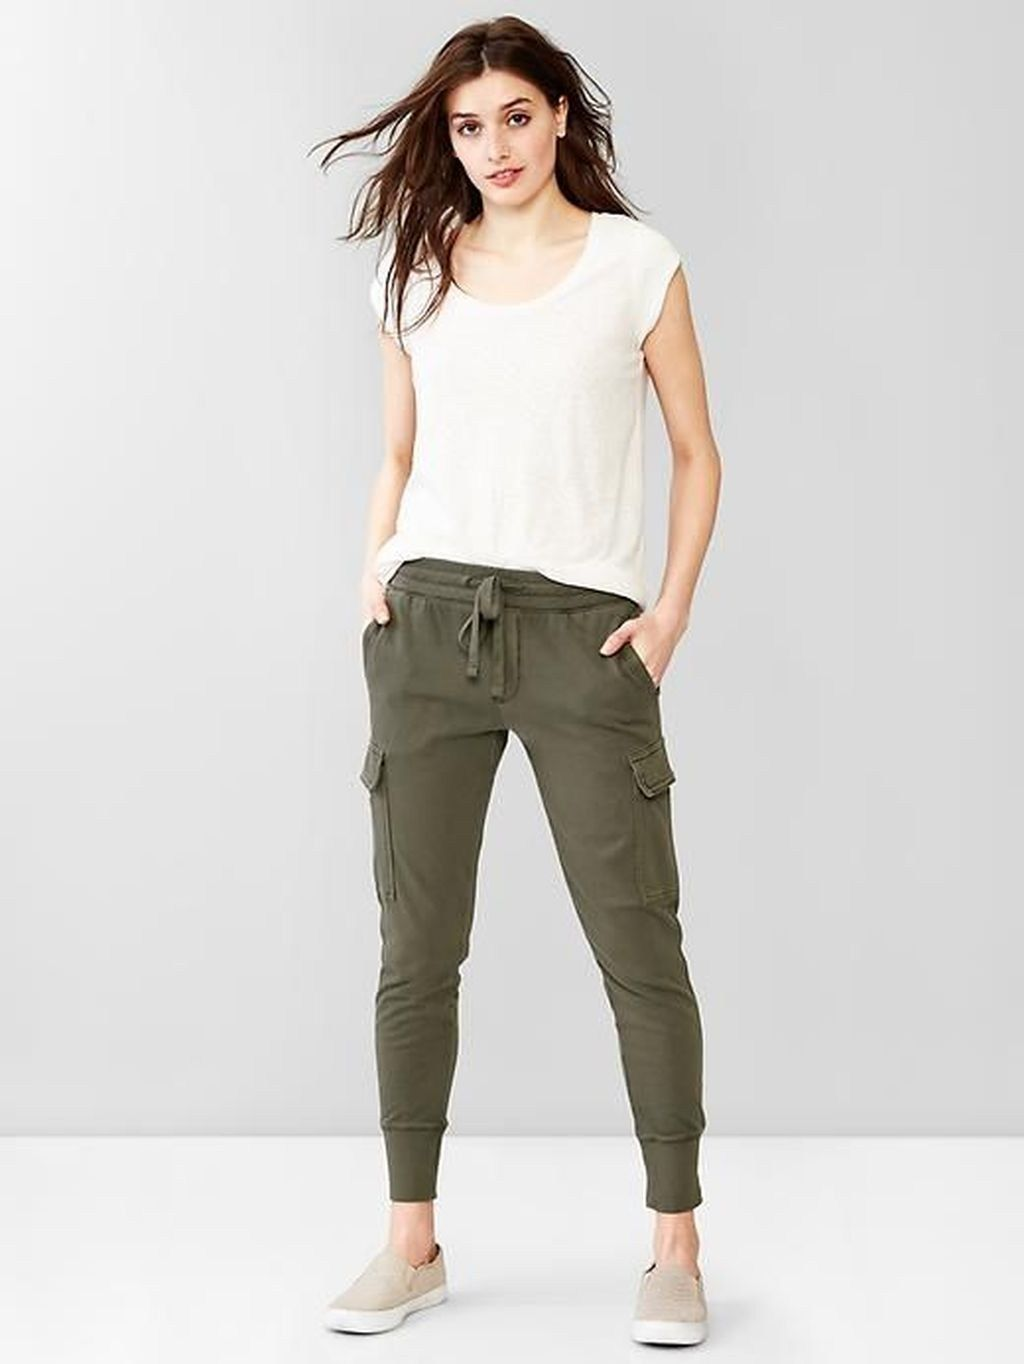 Shoes Have Also Become Important To Get The Desired Look Just Like Your Outfits For Formal Events You Pick Your Dress Shoes T Jogger Mujer Ropa De Moda Ropa